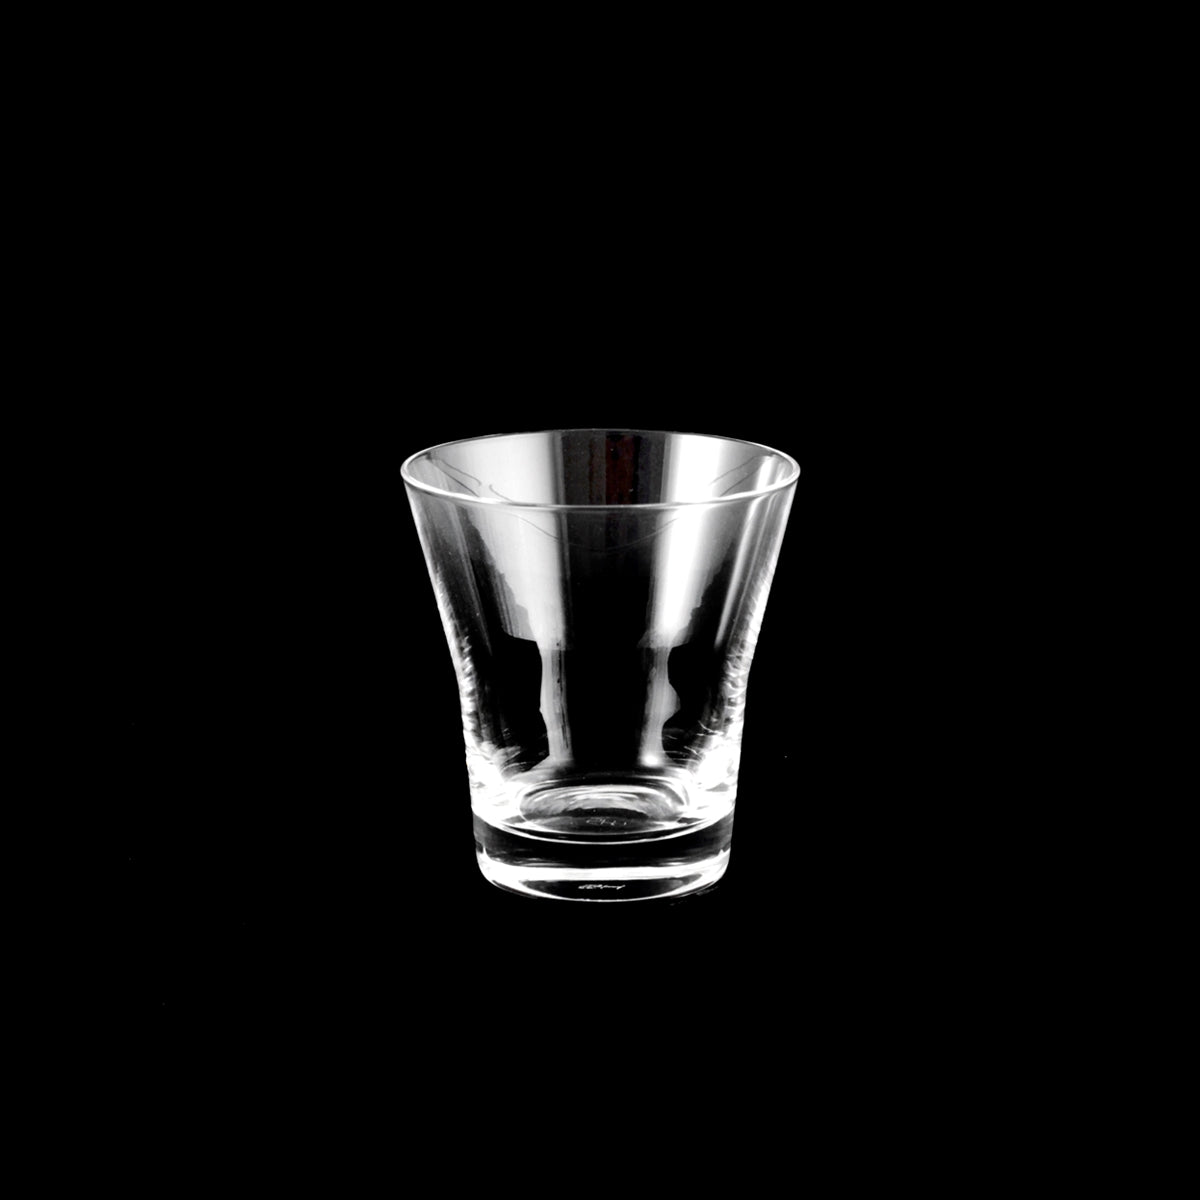 [Clearance] Toyo-Sasaki Hard Strong (HS) Glass Cup 7 fl oz